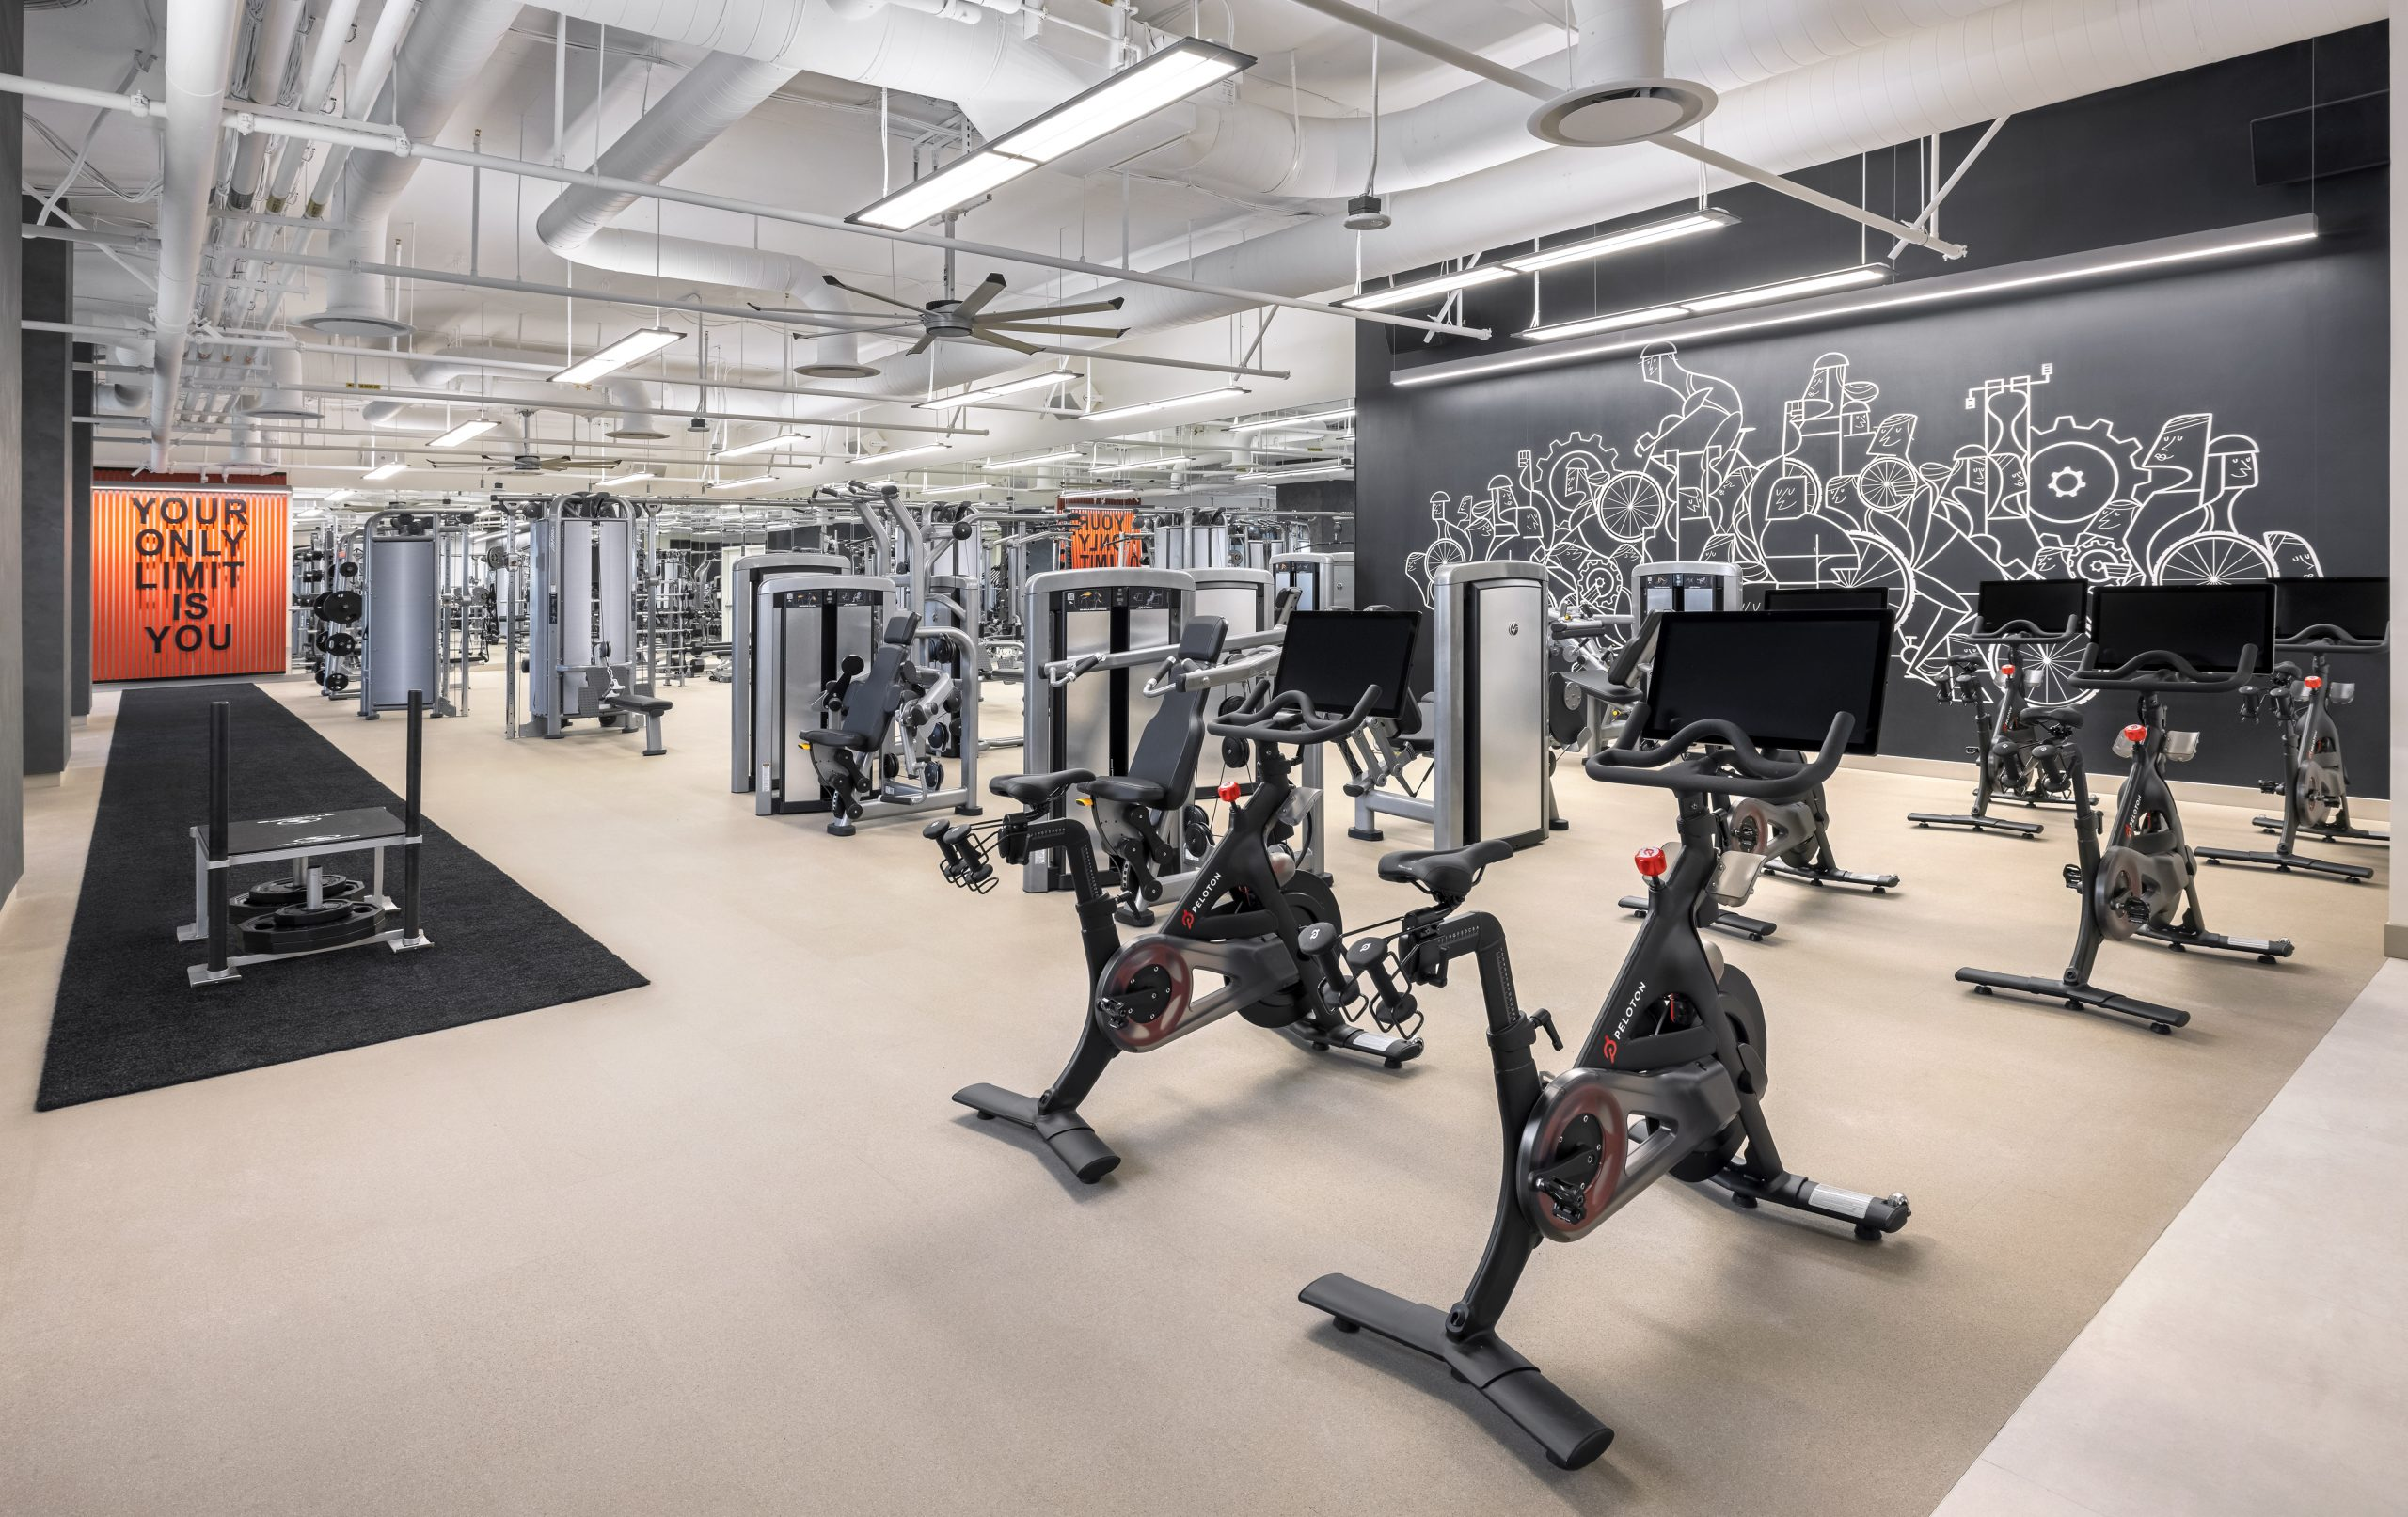 Fitness equipment set up in the fitness center at Resorts World Las Vegas